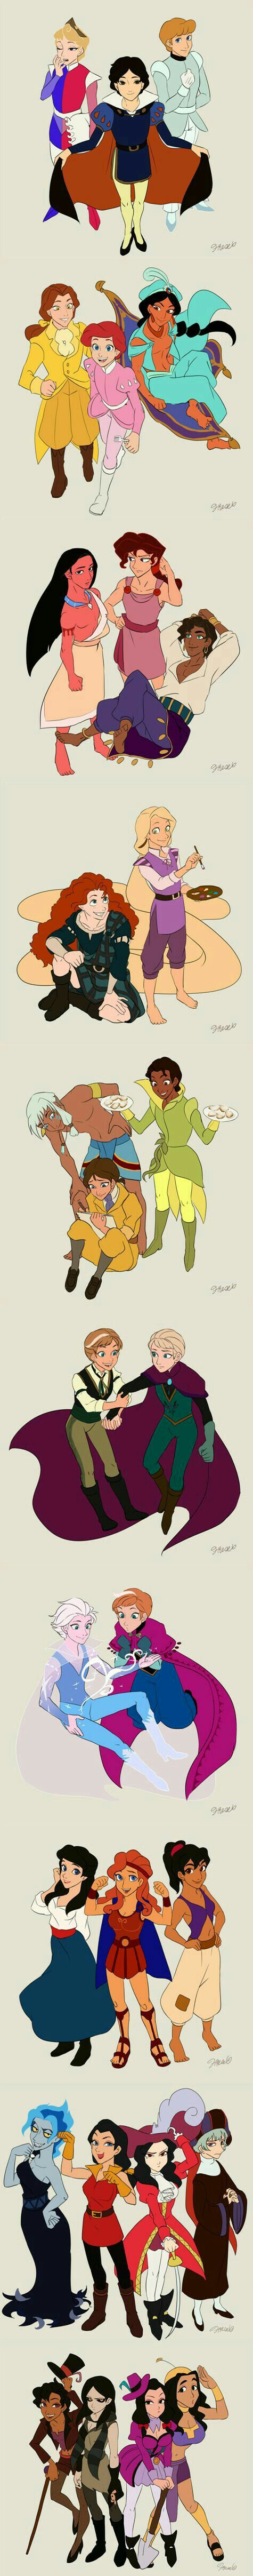 Hercules, Captain Hook, and Kronk are adorable